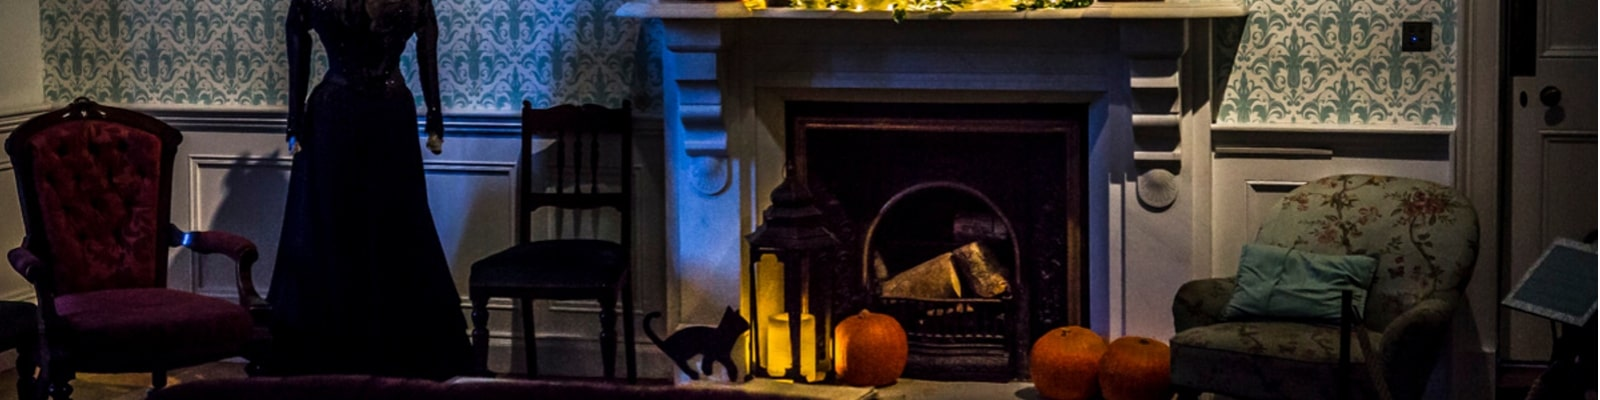 https://www.airfield.ie/wp-content/uploads/2019/10/Halloween-Decorations-at-Fireplace-Airfield-Estate-min.jpg